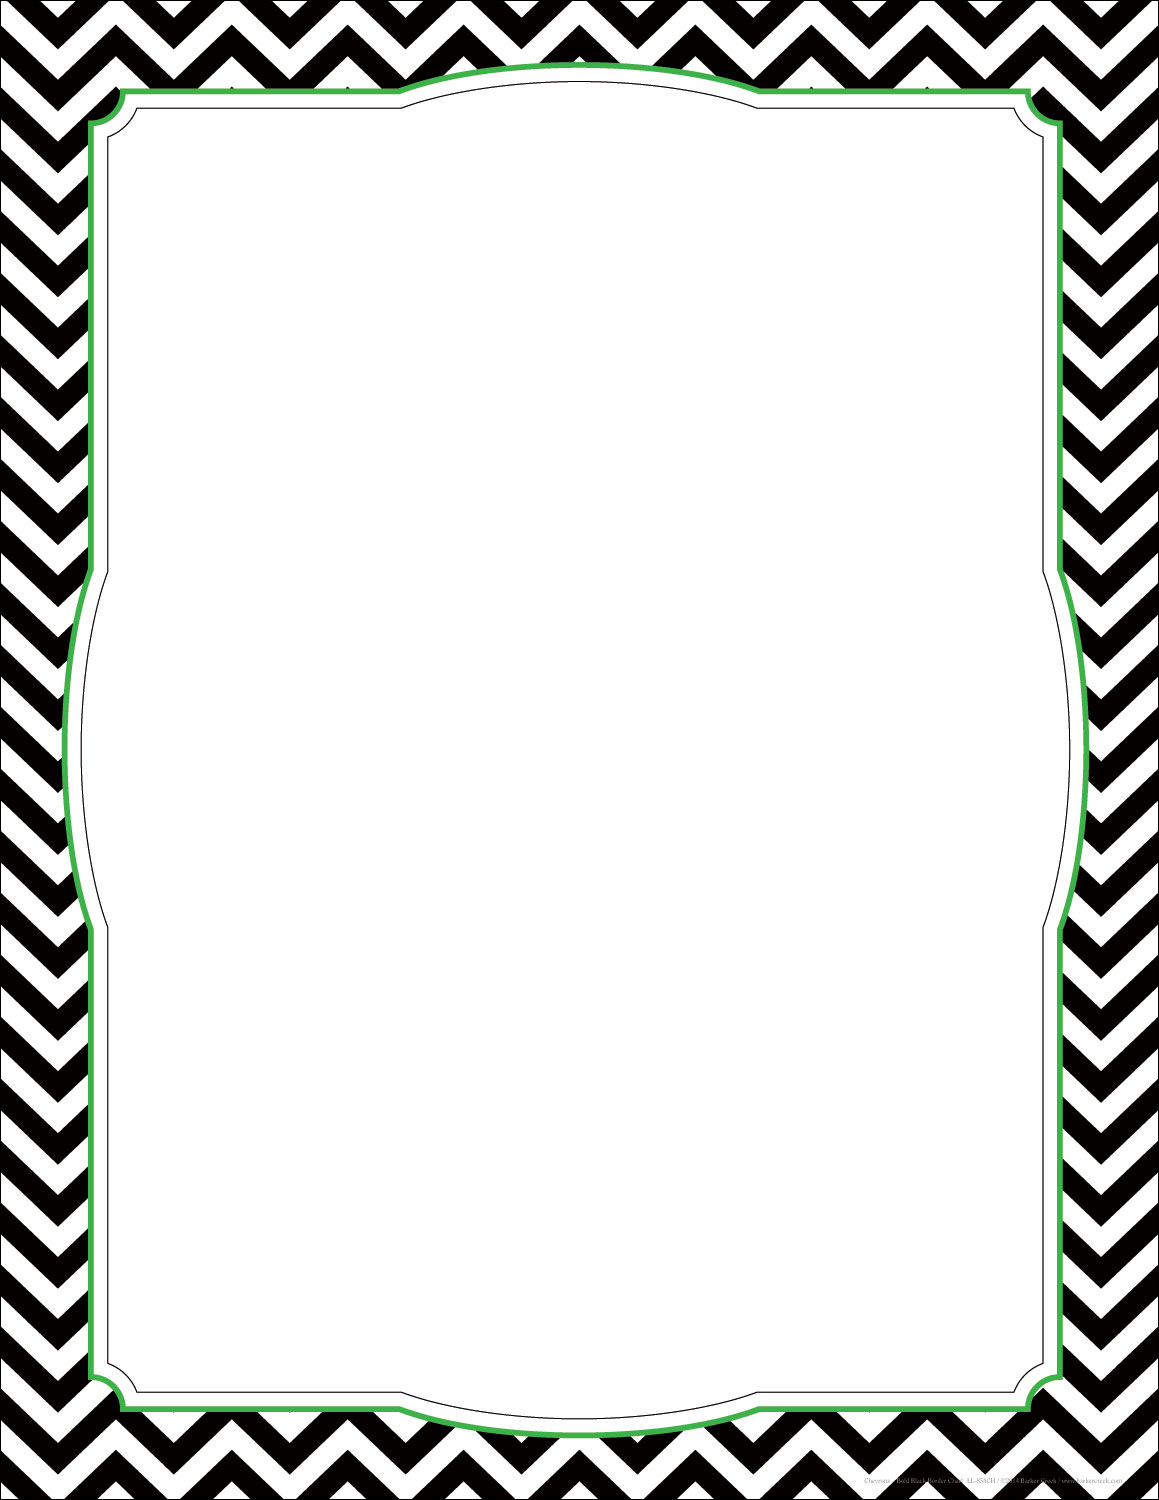 Black And White Chevron Paper - Clip Art Border